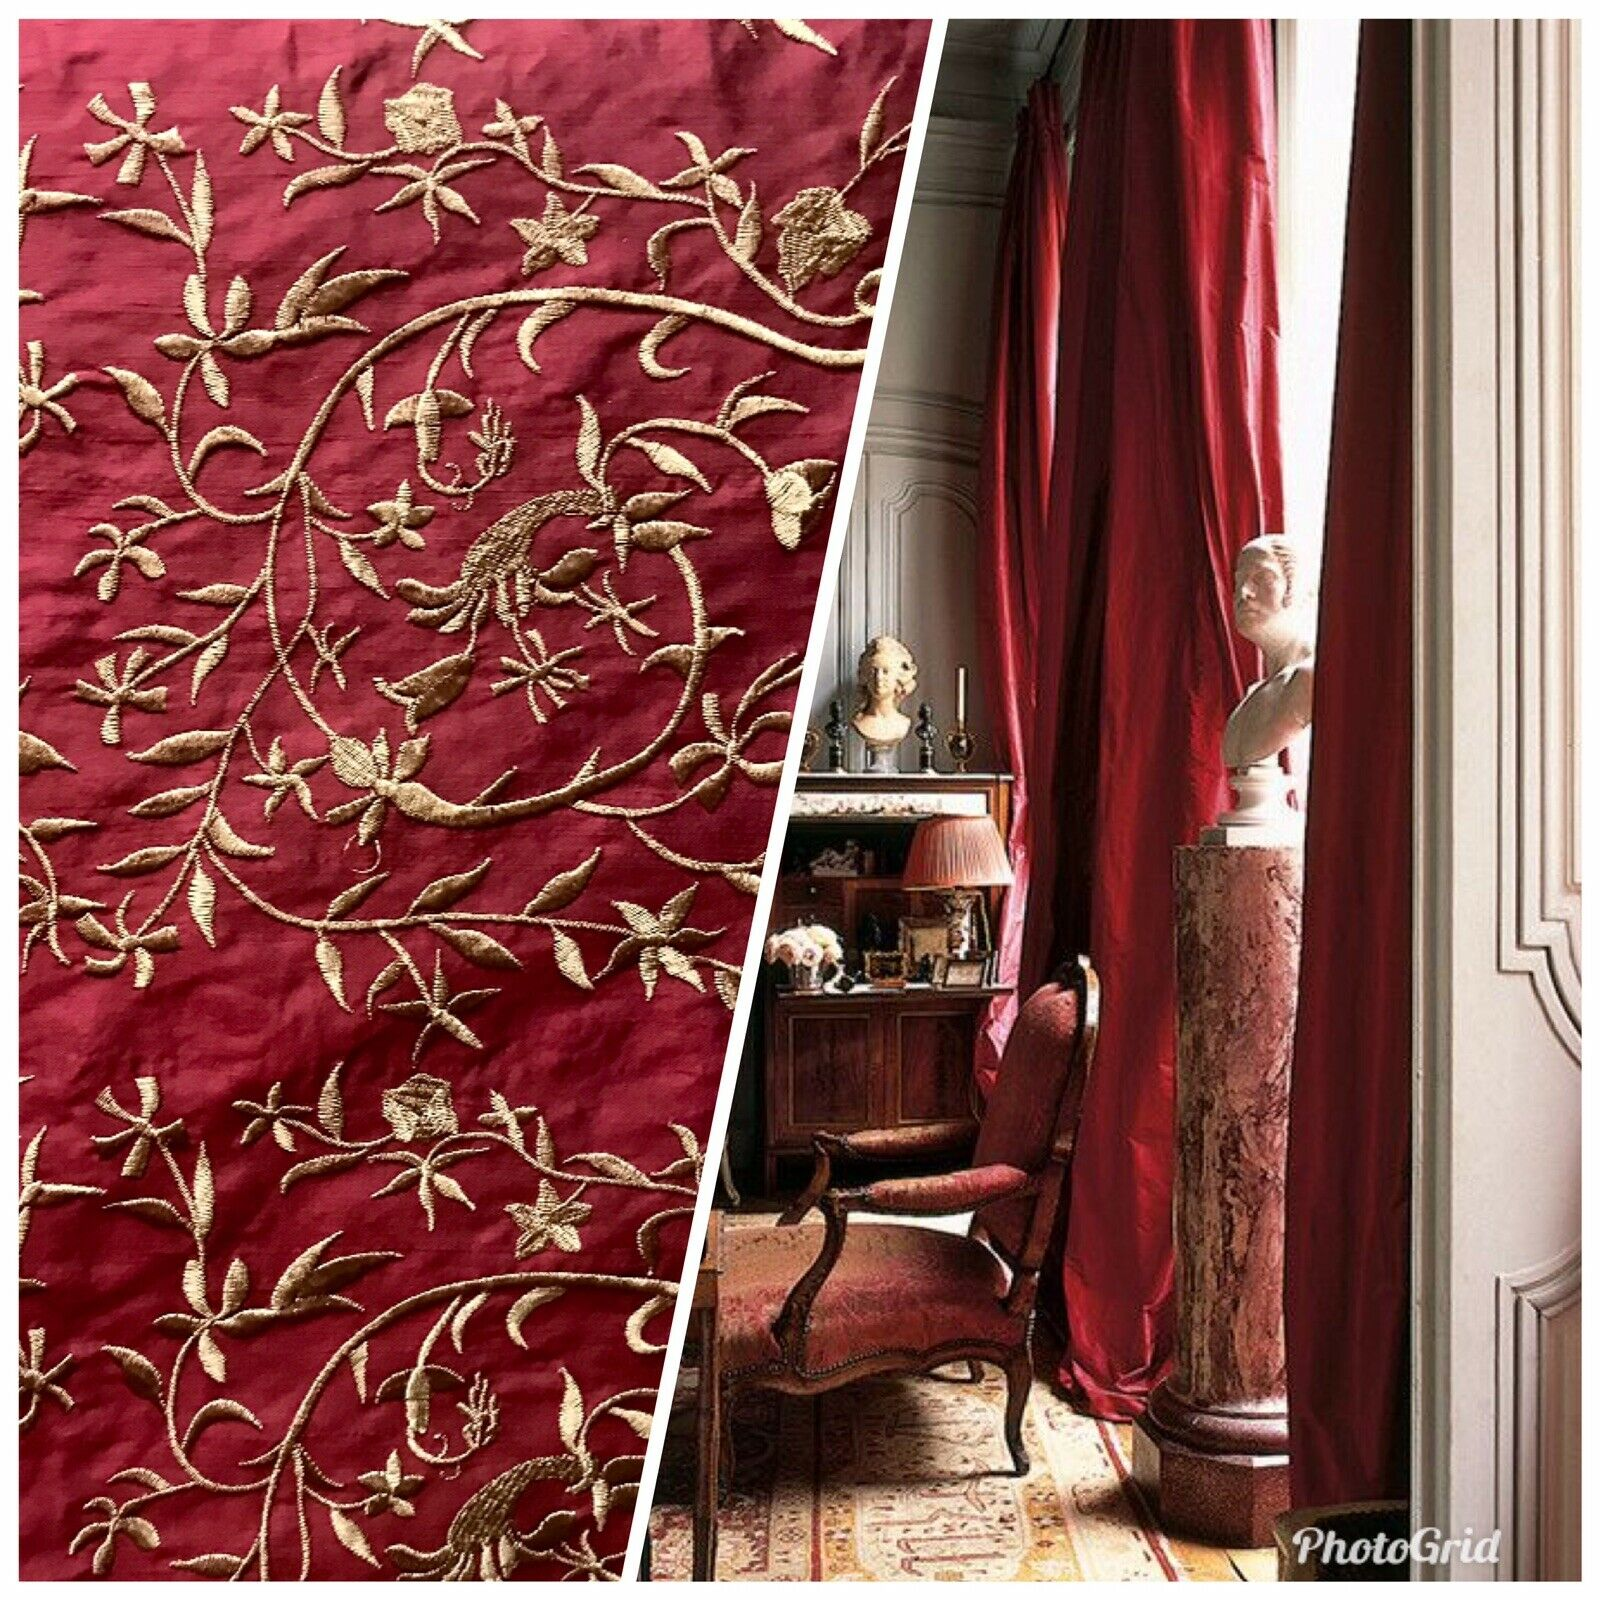 NEW! 100% Silk Dupioni Embroidered Gold Floral Motif Drapery Fabric - Dark Red